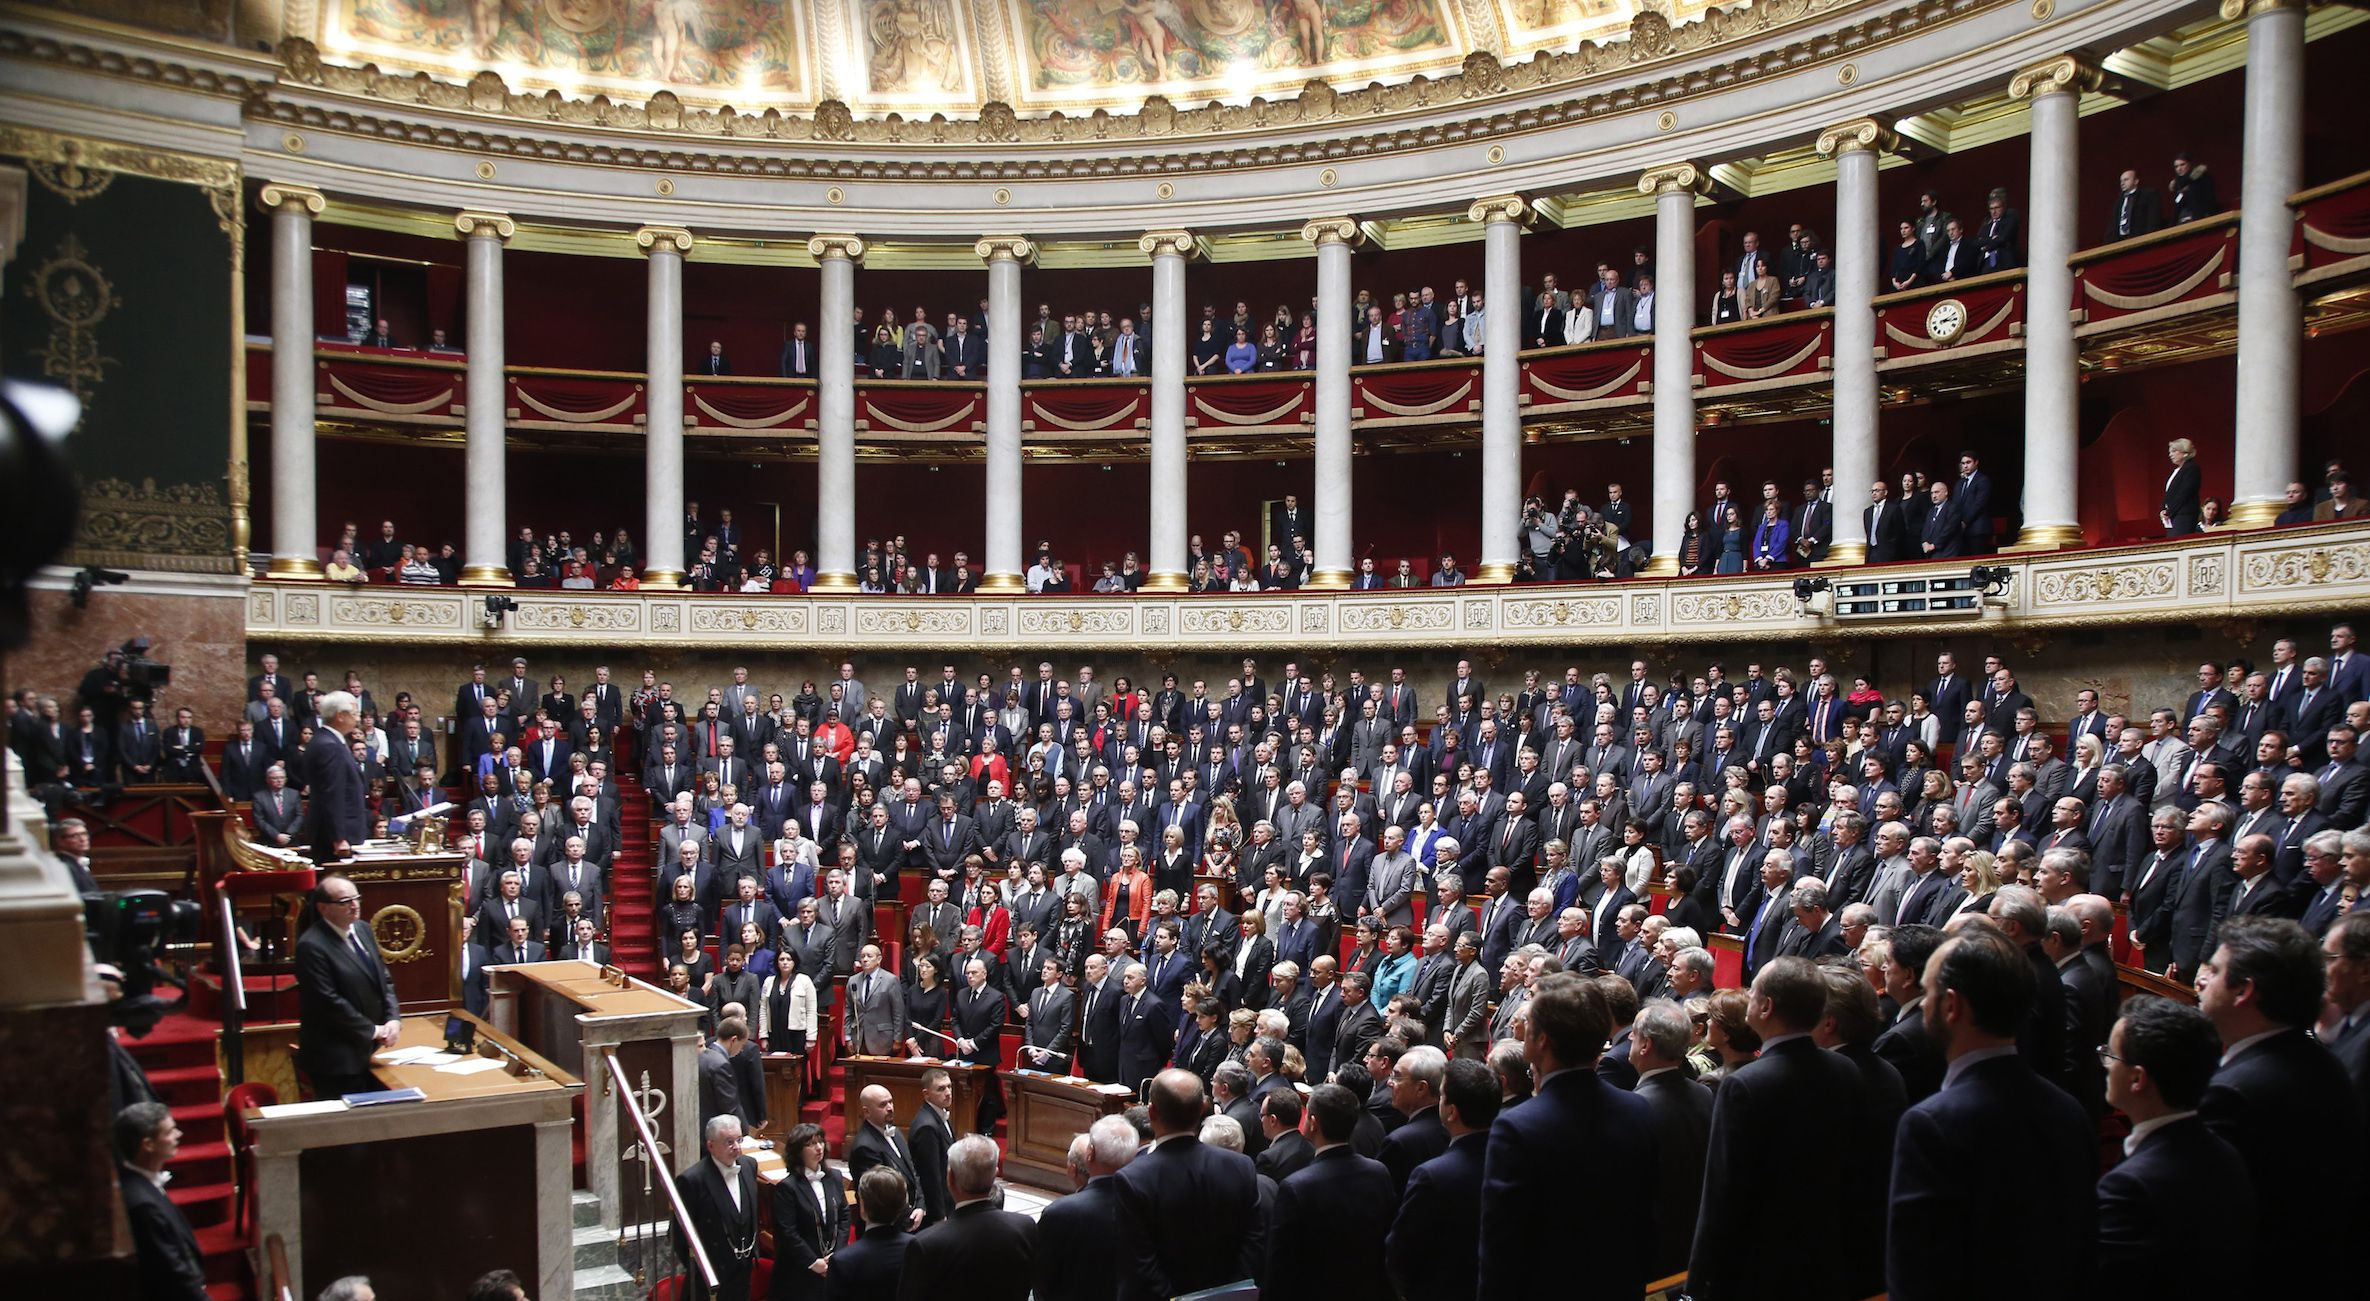 Members of the French government and deputies observe a minute of silence during a session at the National Assembly in Paris January 13, 2015 to pay their respects to the victims of last week's Islamist militant attacks. A total of seventeen people were killed in attacks at the satirical weekly Charlie Hebdo, a shooting in Montrouge, and a hostage taking at a kosher supermarket, Hyper Cacher, at the Porte de Vincennes.  REUTERS/Charles Platiau (FRANCE - Tags: POLITICS CRIME LAW) - RTR4LAC0